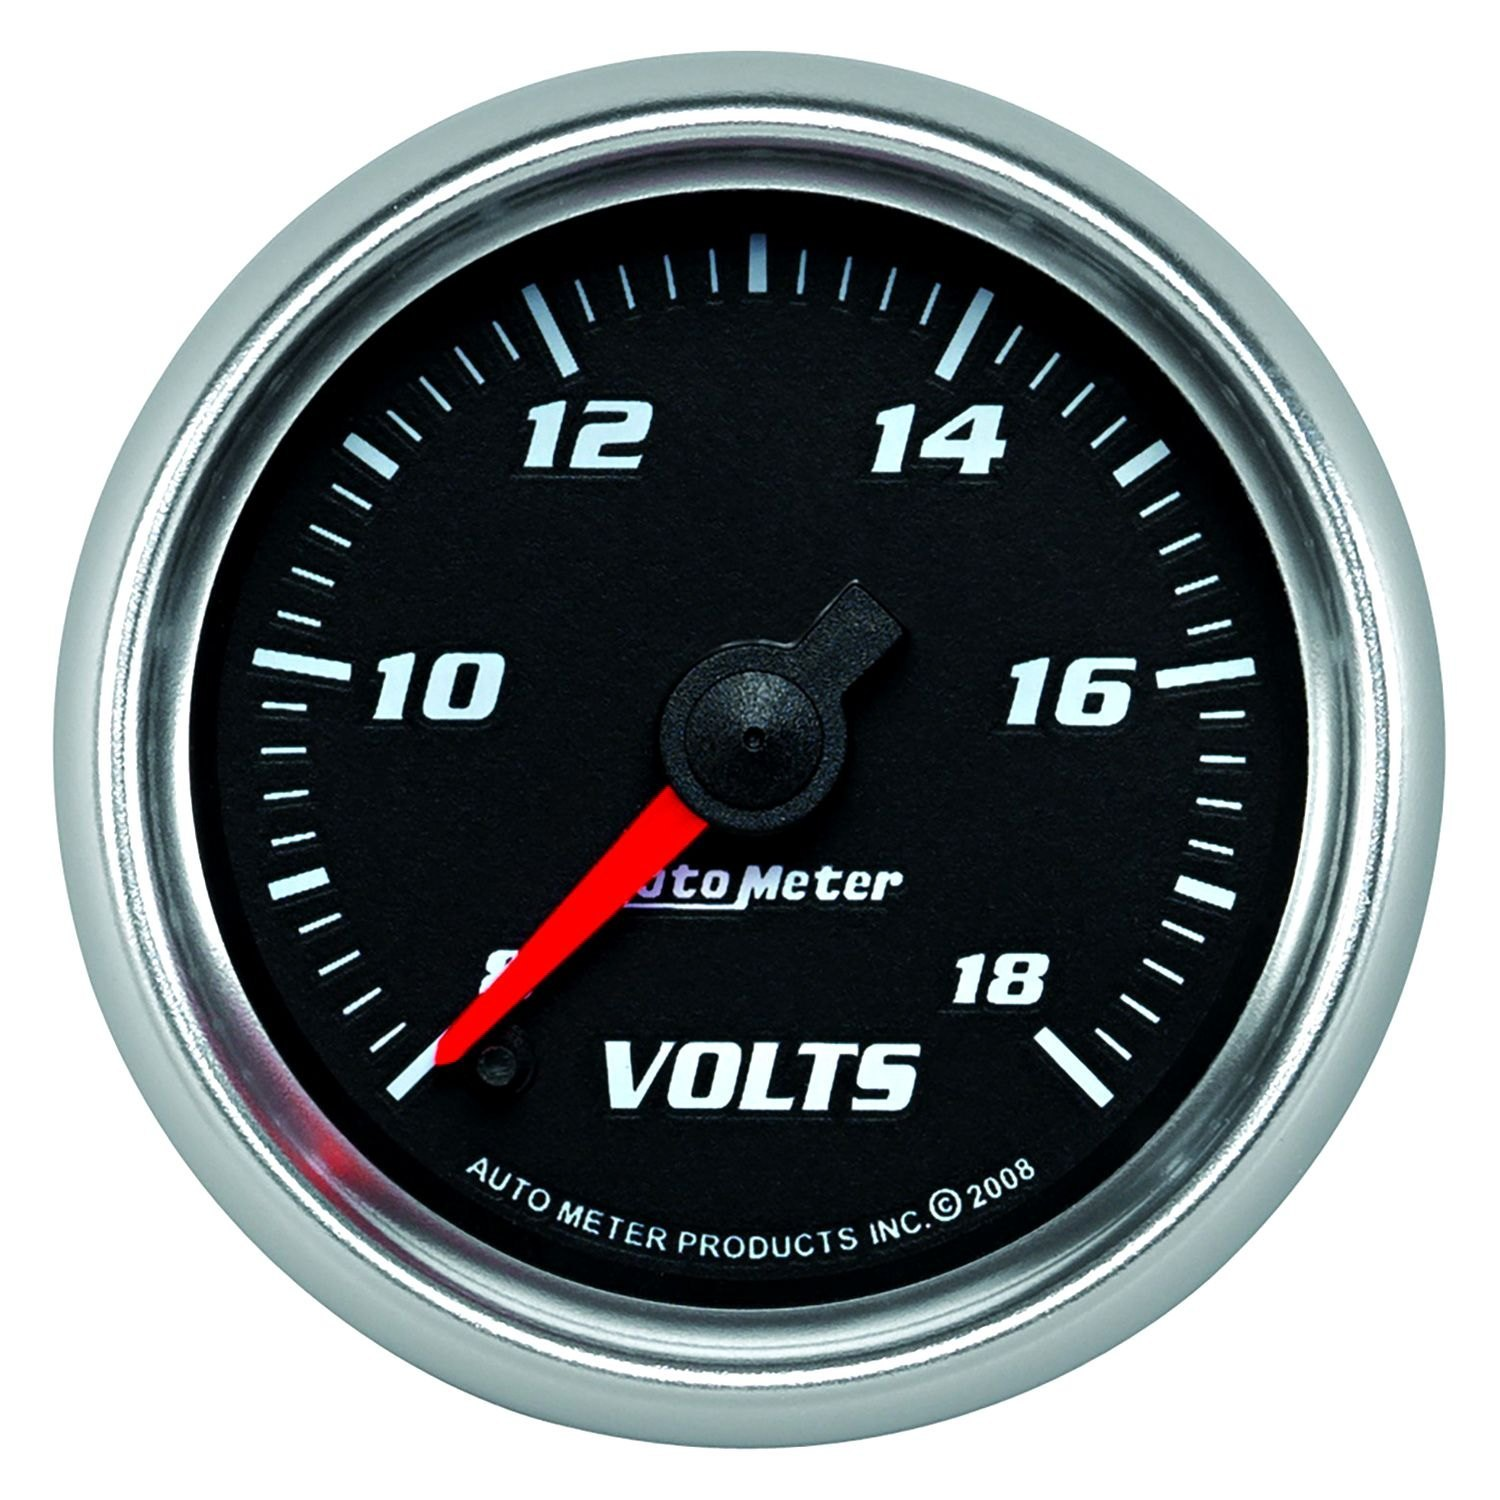 Checking Electric Fence With Voltmeter : Autometer voltmeter installation instructions